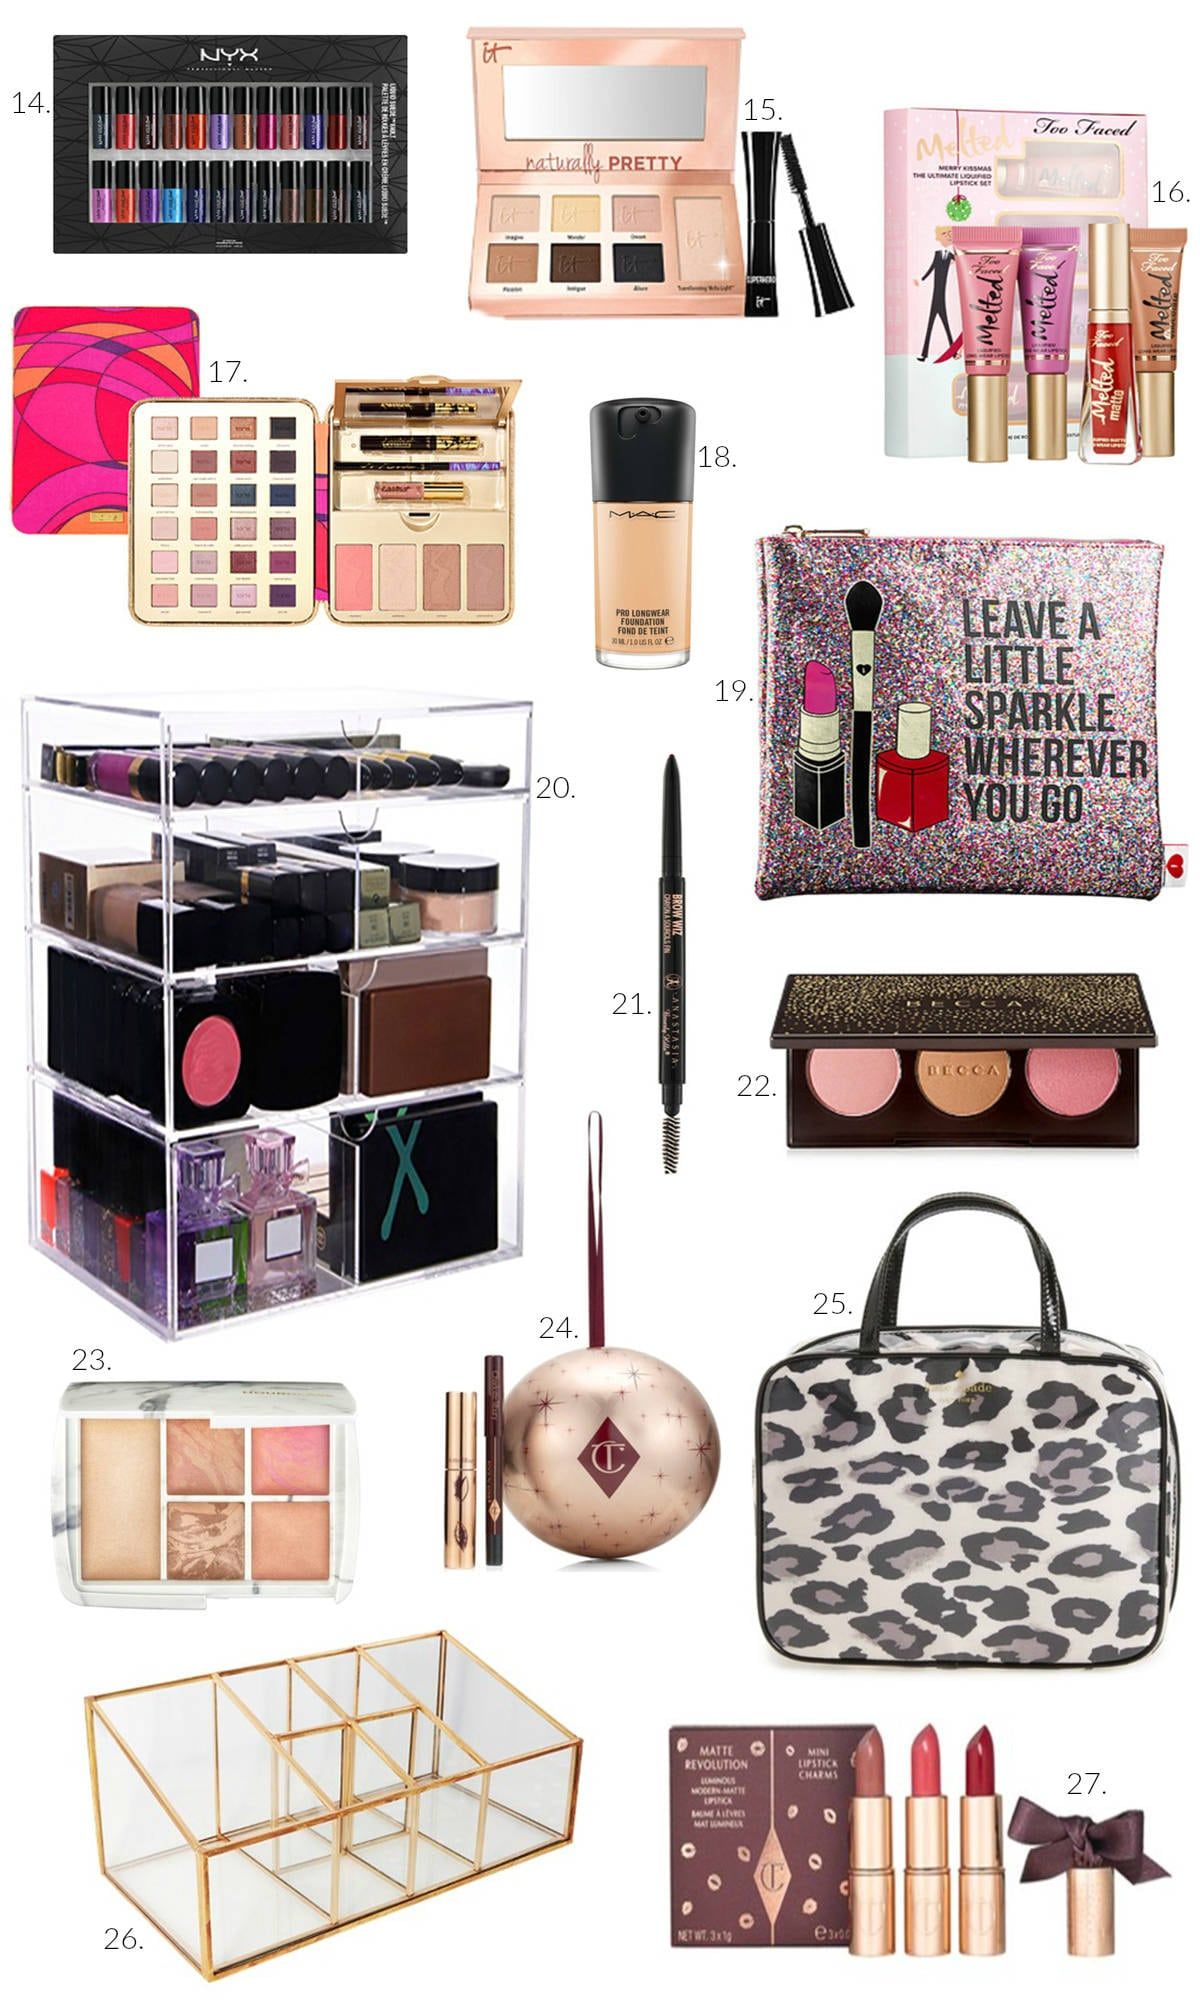 Best beauty and makeup gifts for her | makeup organizer | contour palette | best foundation | makeup travel bag | liquid lipstick | unique gifts for her